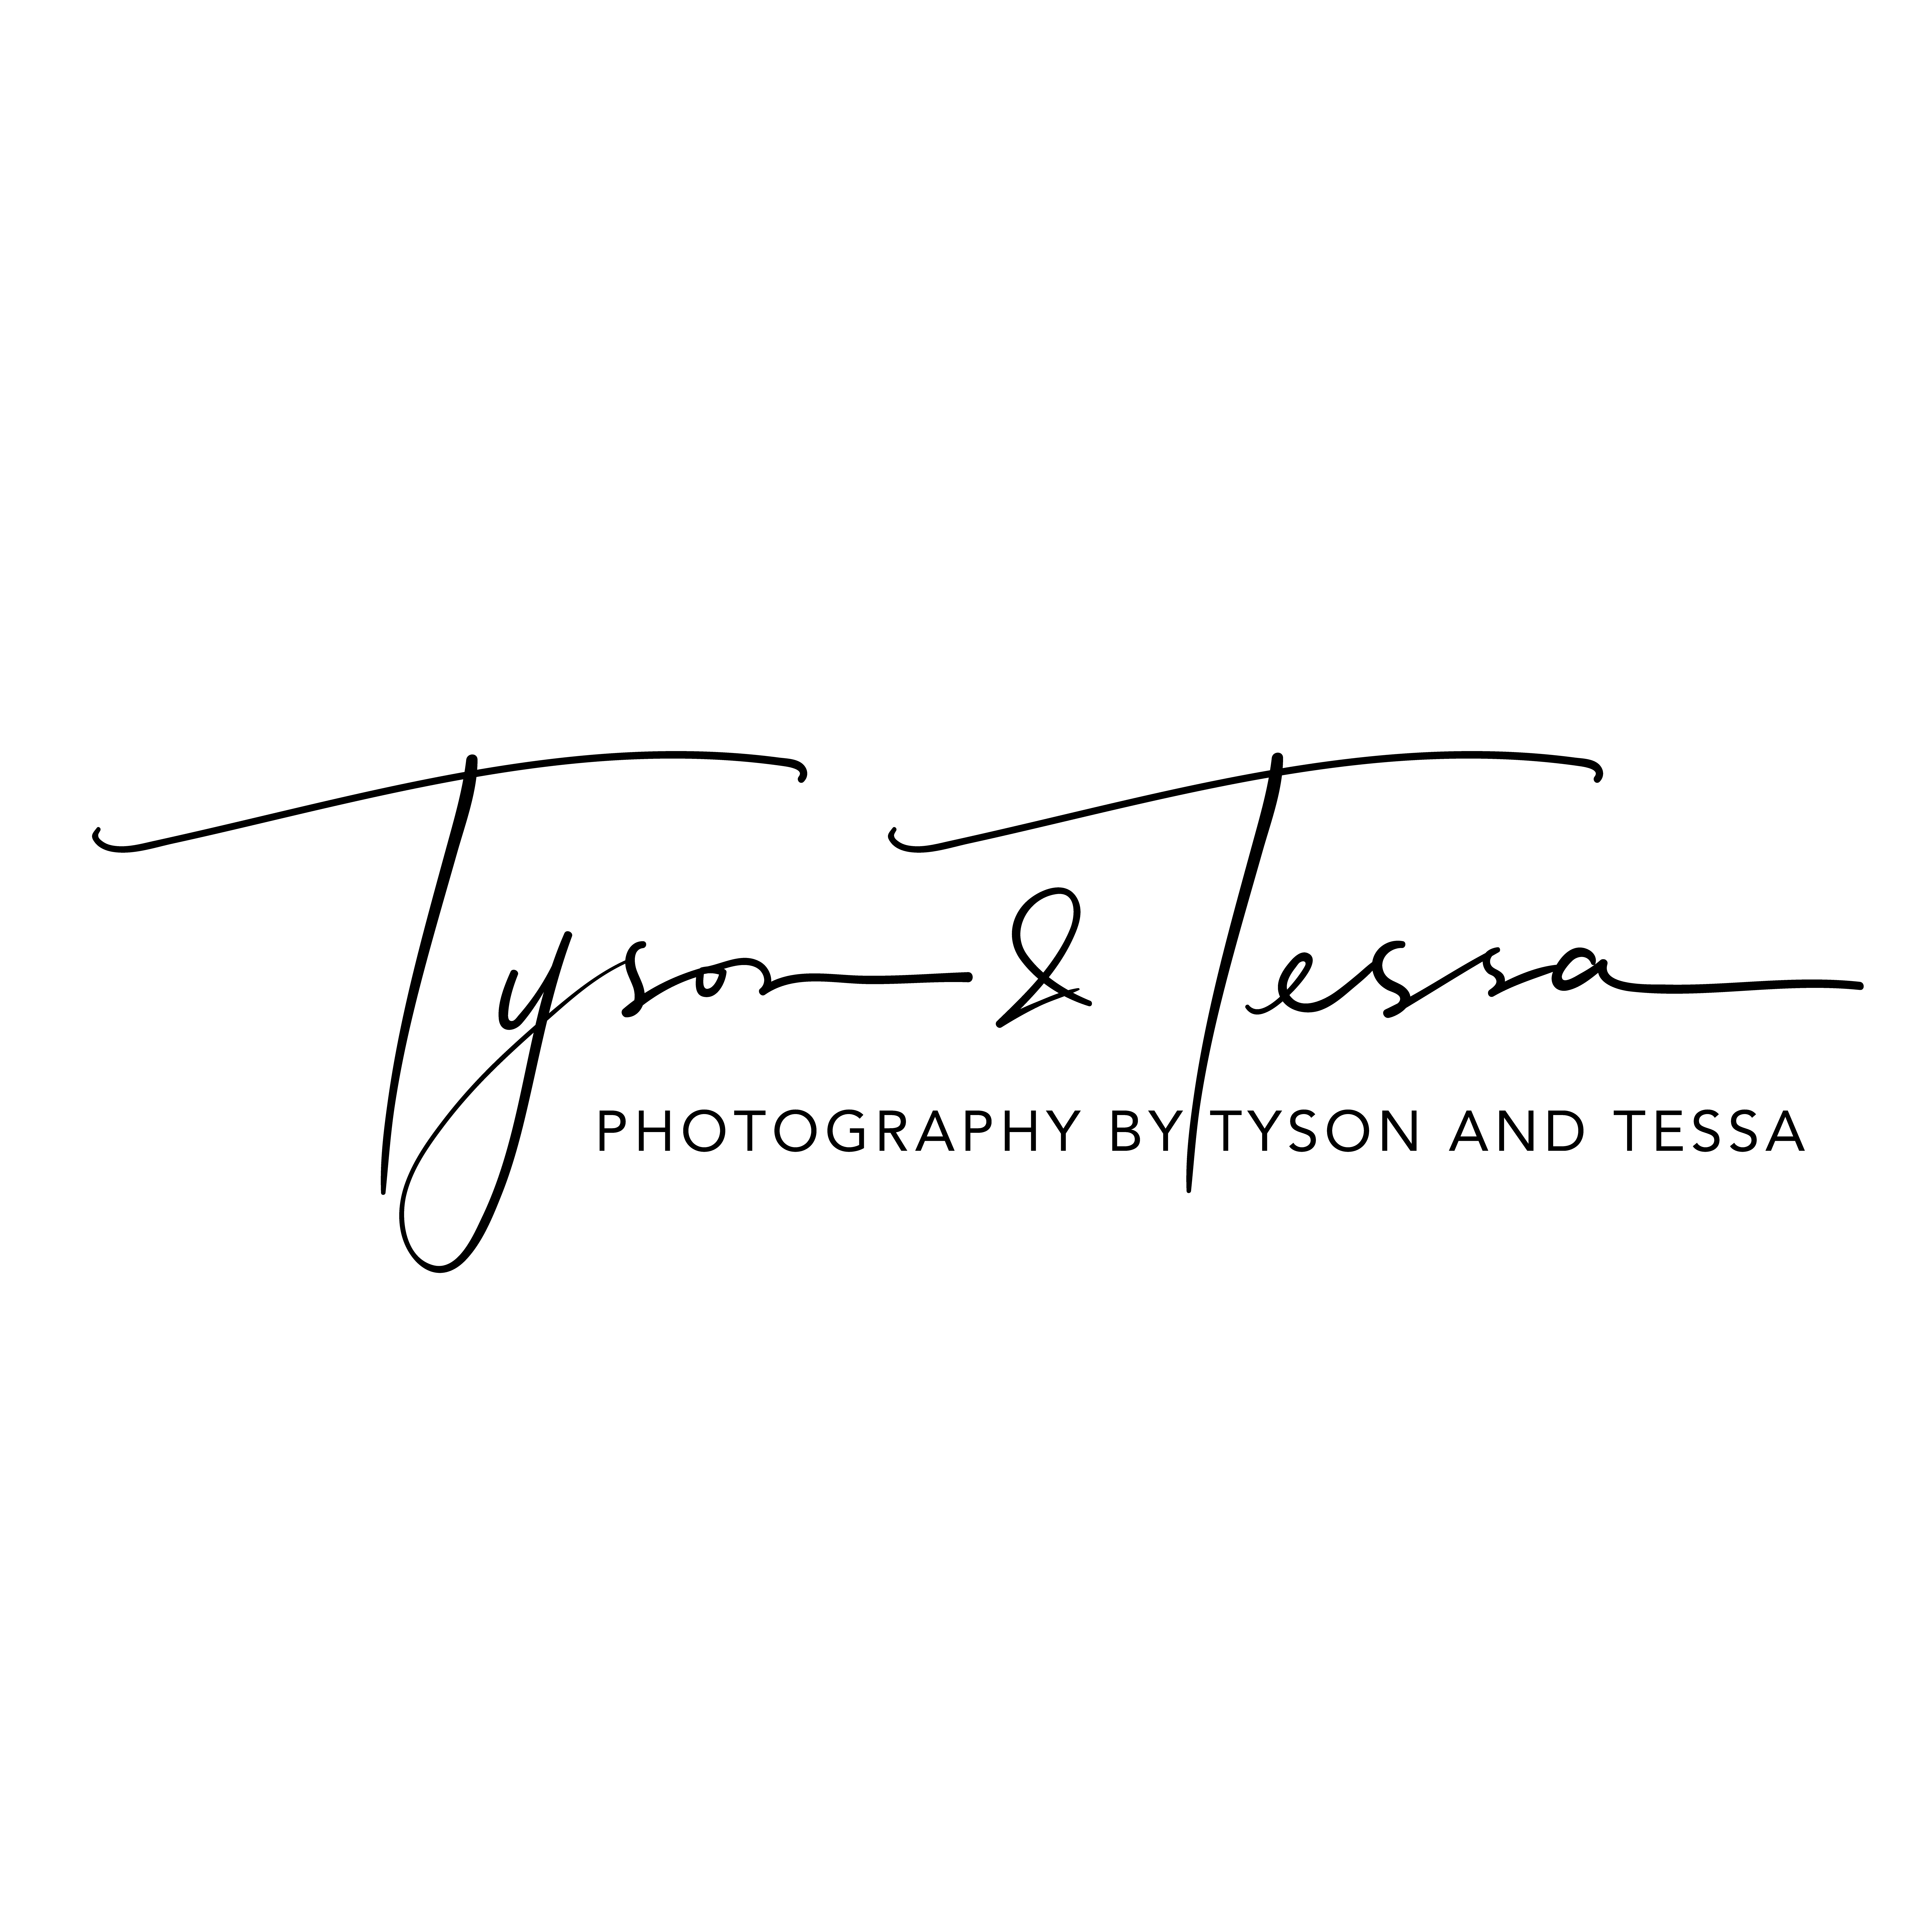 Photography by Tyson and Tessa